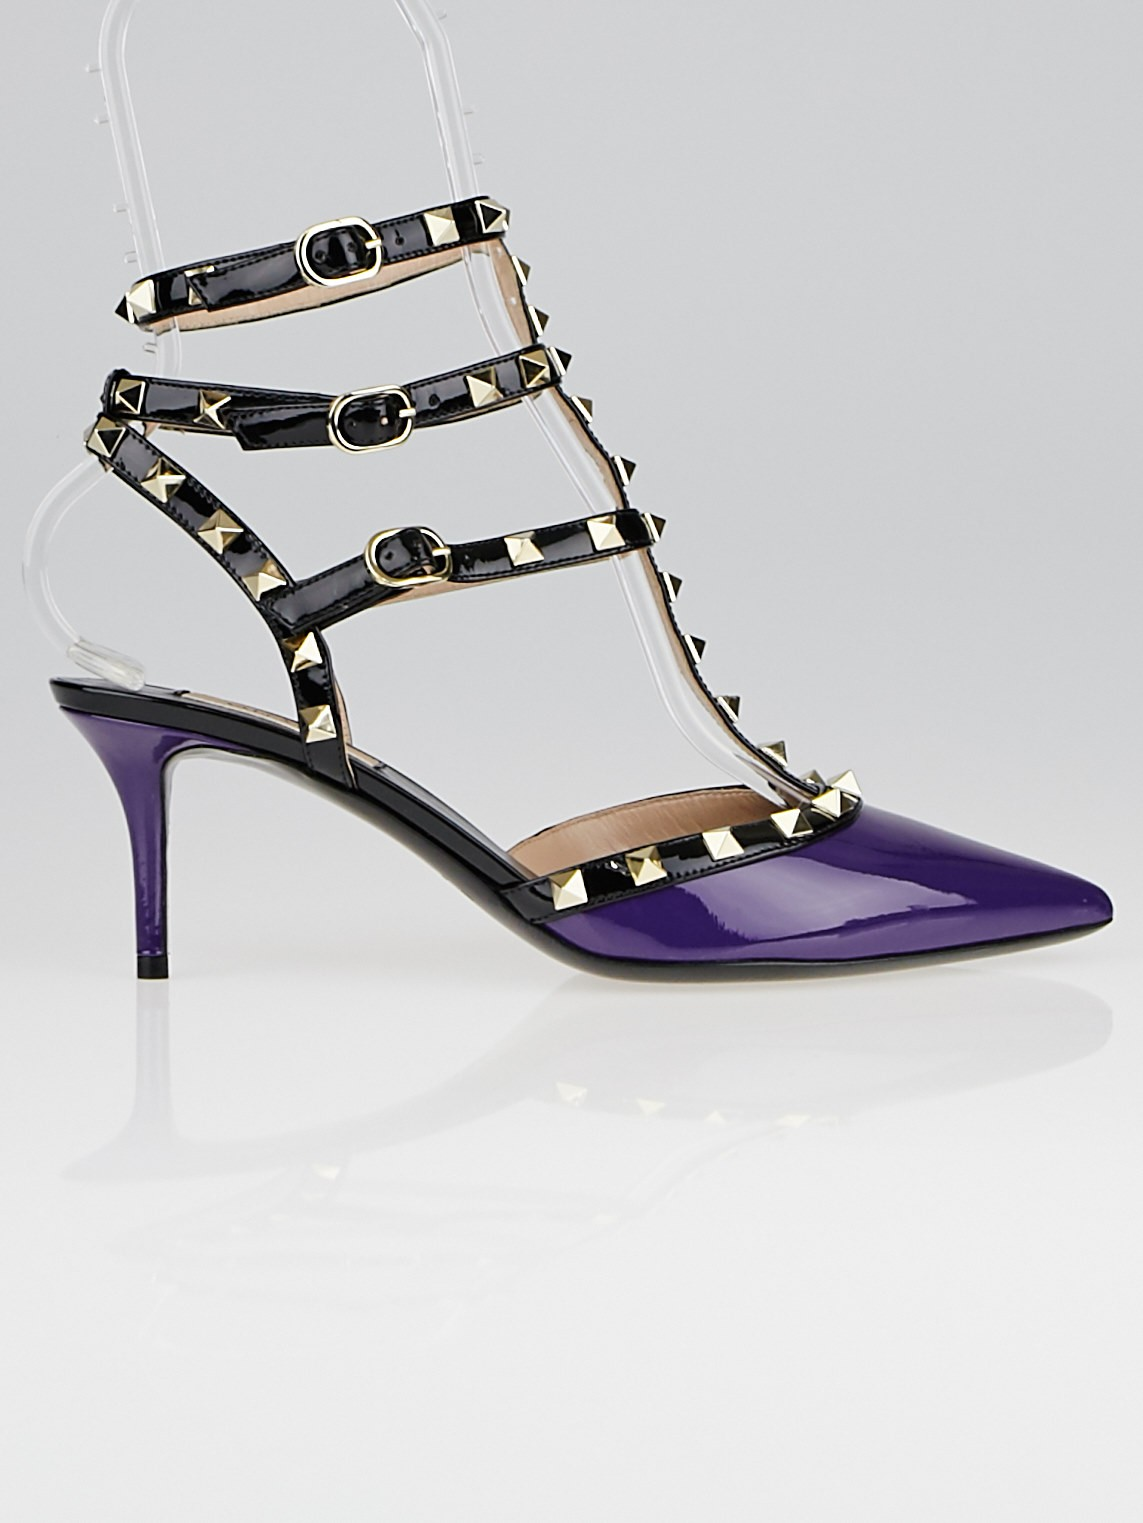 valentino purple black patent leather rockstud t strap kitten heel pumps size 8 5 39 yoogi 39 s. Black Bedroom Furniture Sets. Home Design Ideas